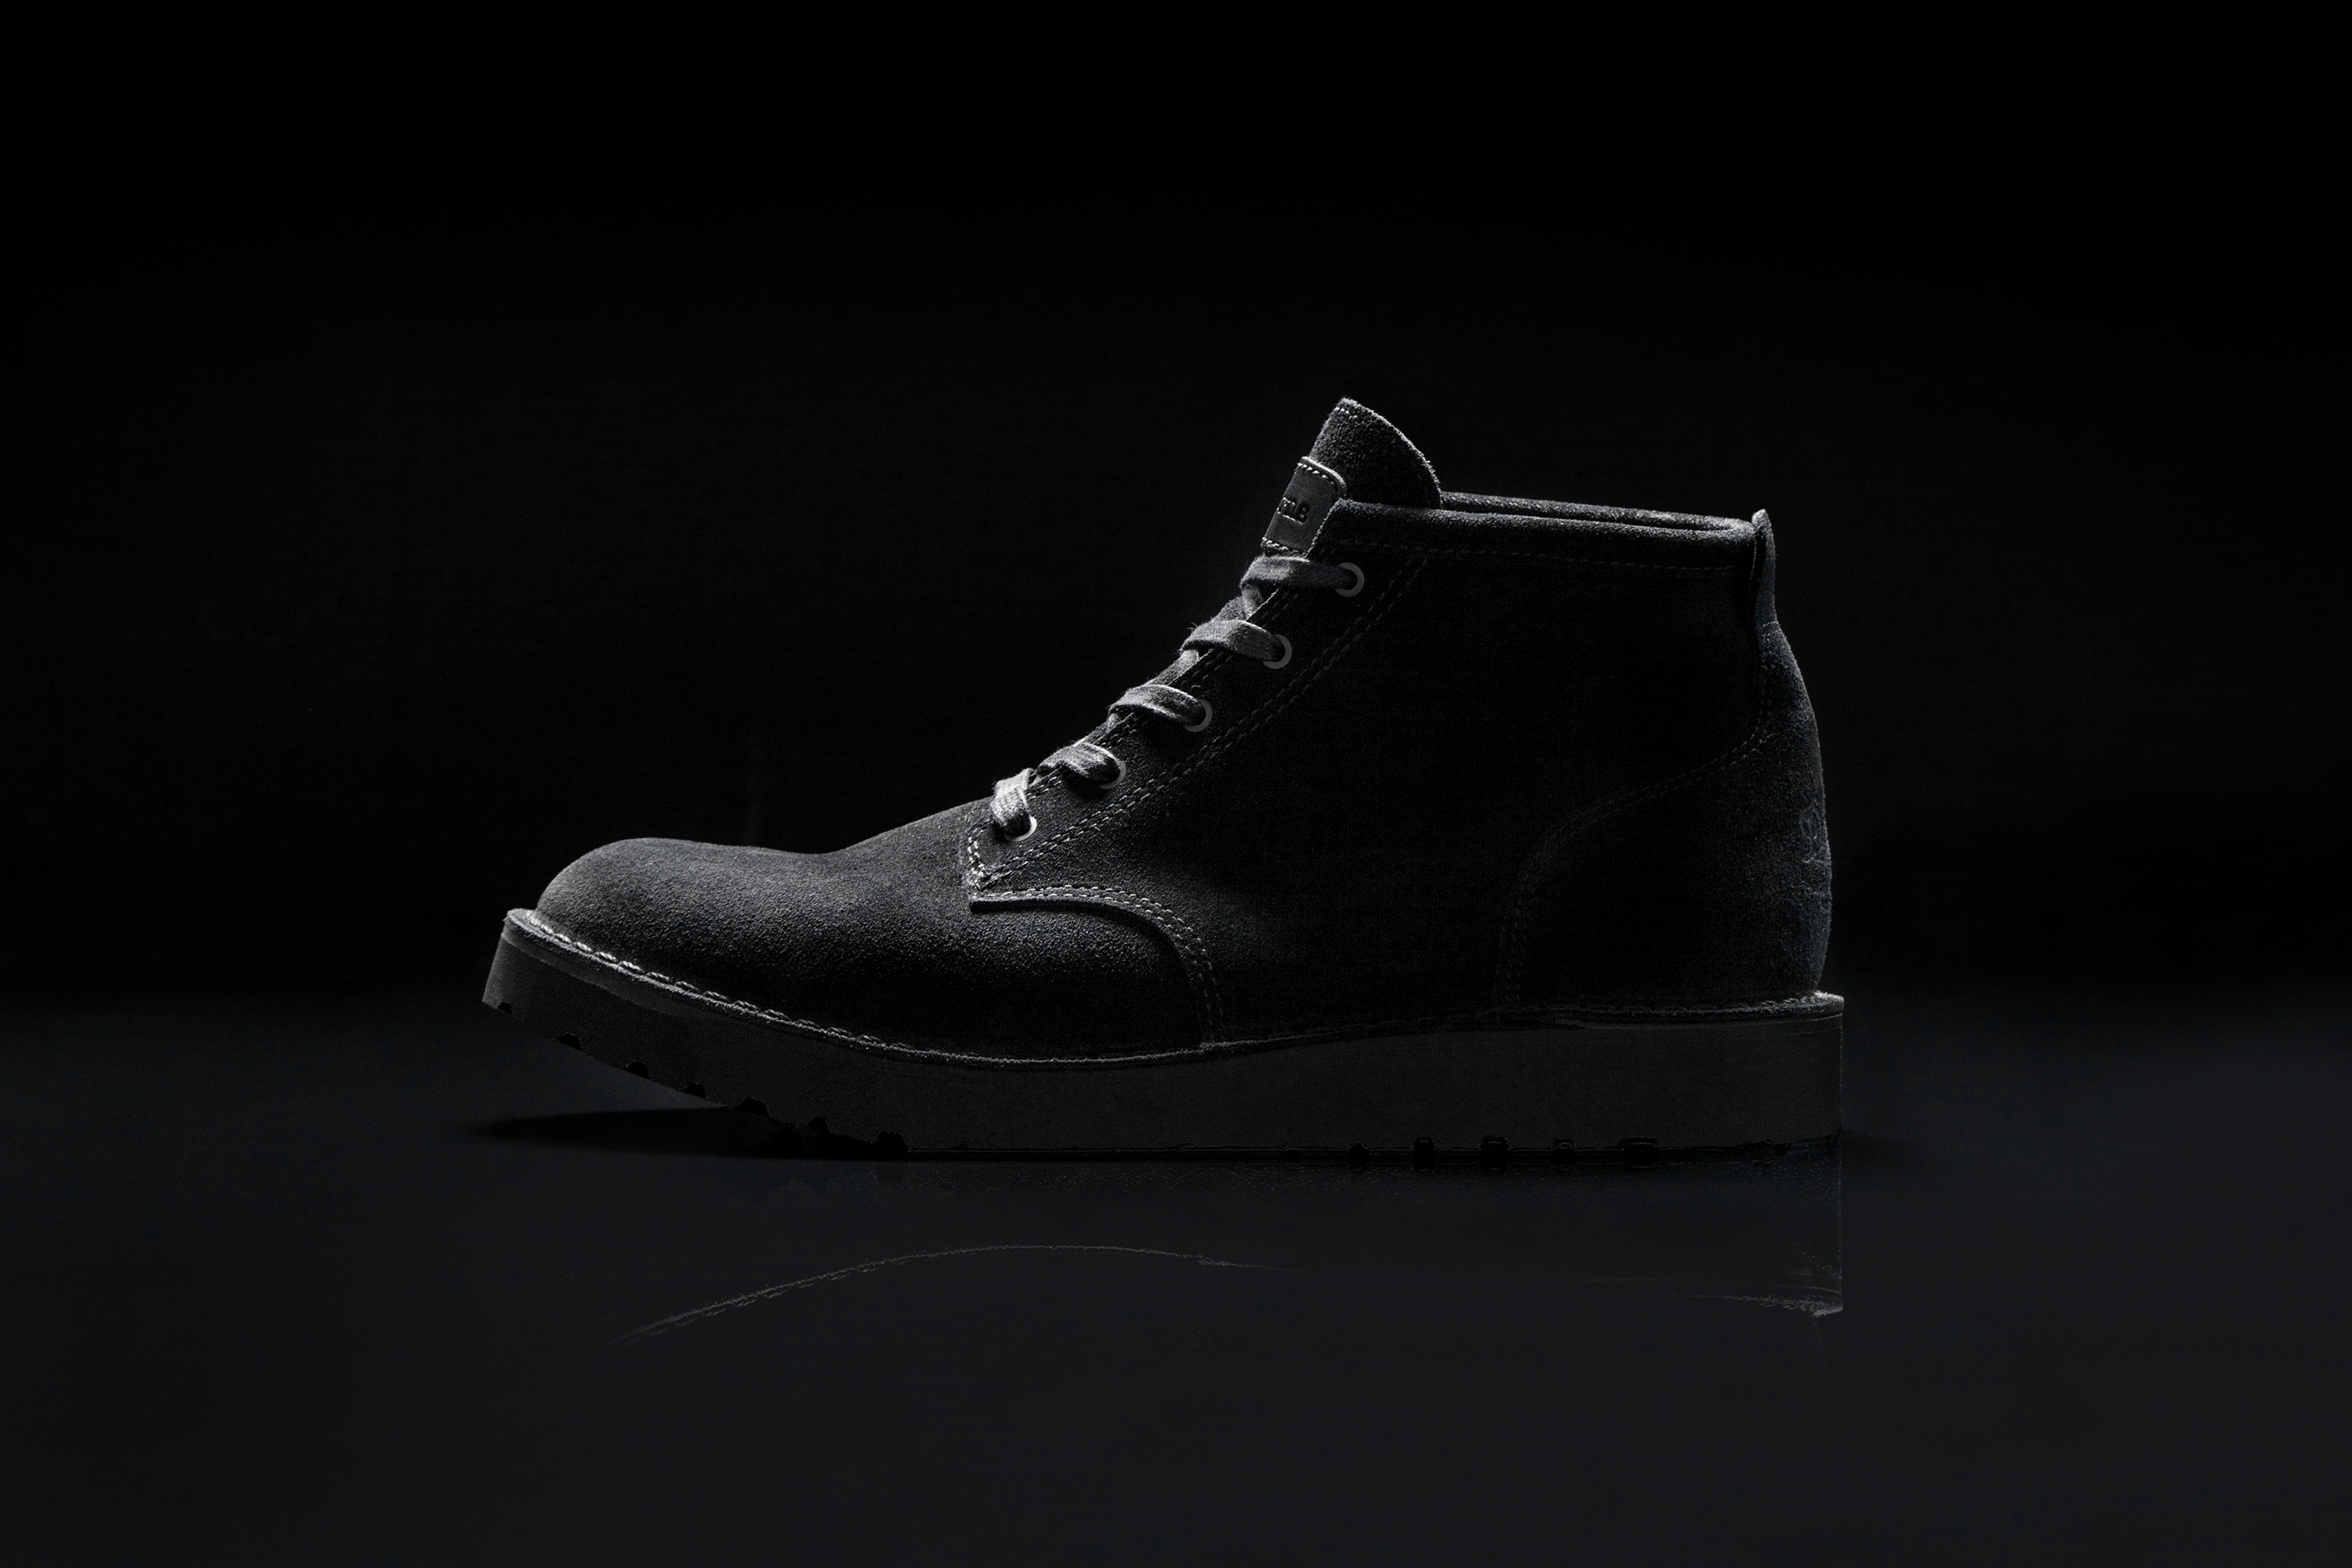 DANNER LAUNCHES SECOND BOOT COLLABORATION WITH CANADIAN BRAND ...